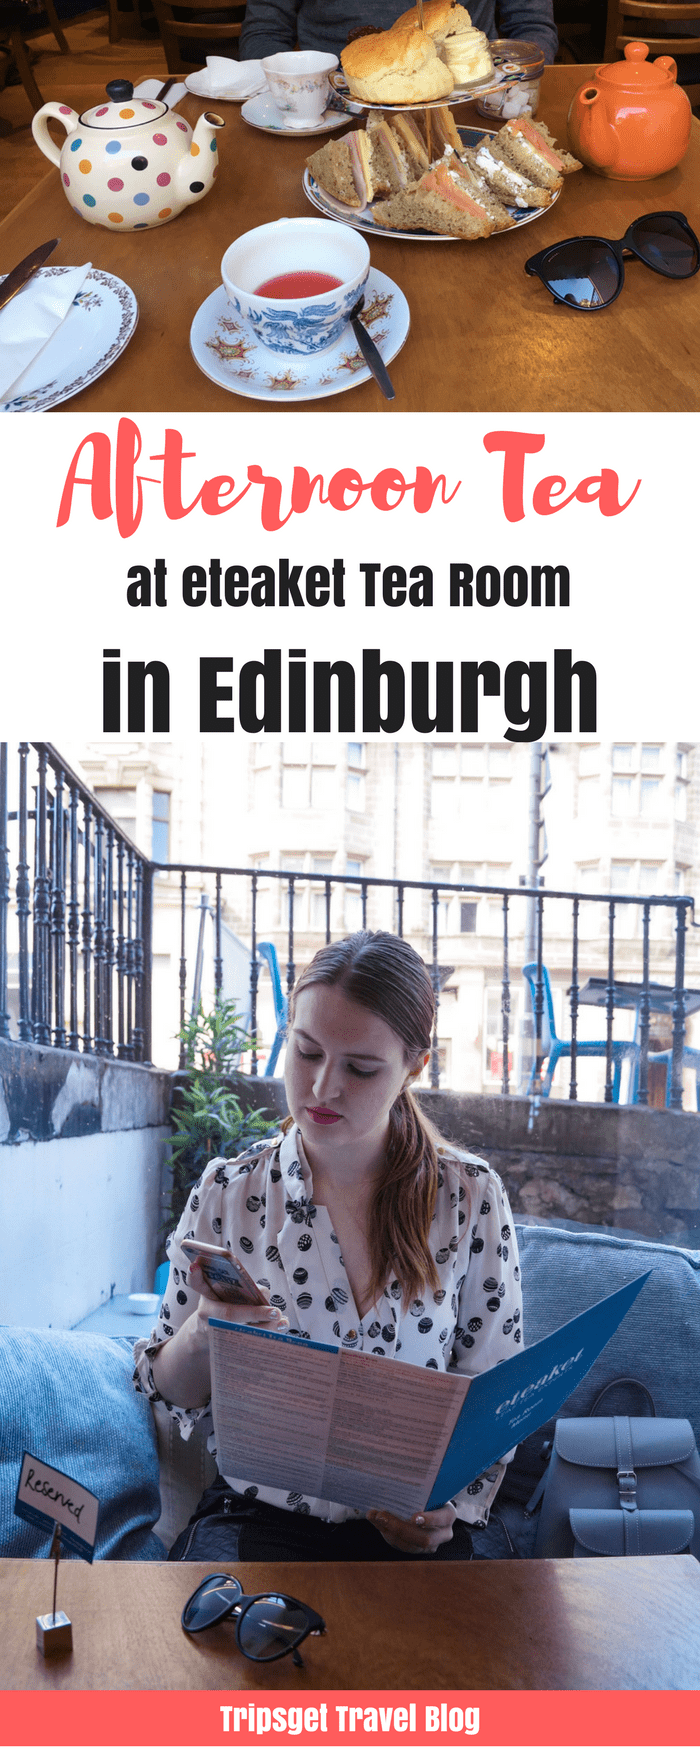 Great Afternoon Tea in Edinburgh - eteaket tea room